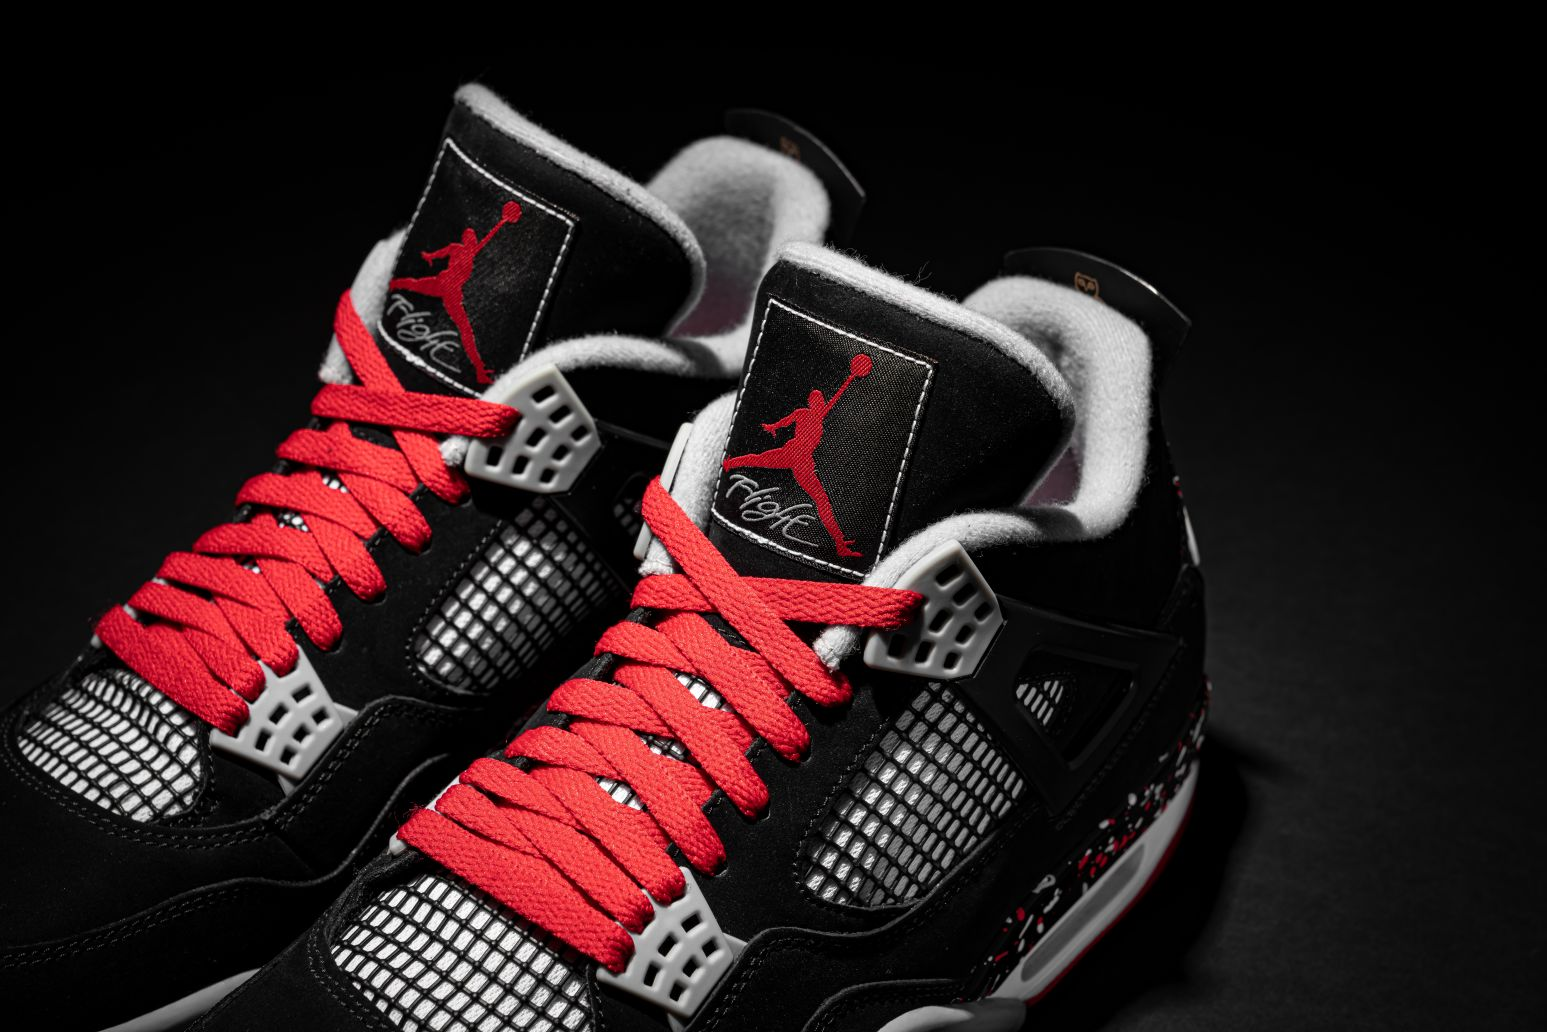 Christie's Auction - Original Air Takes Flight - The Evolution and Influence of Air Jordan Sneakers